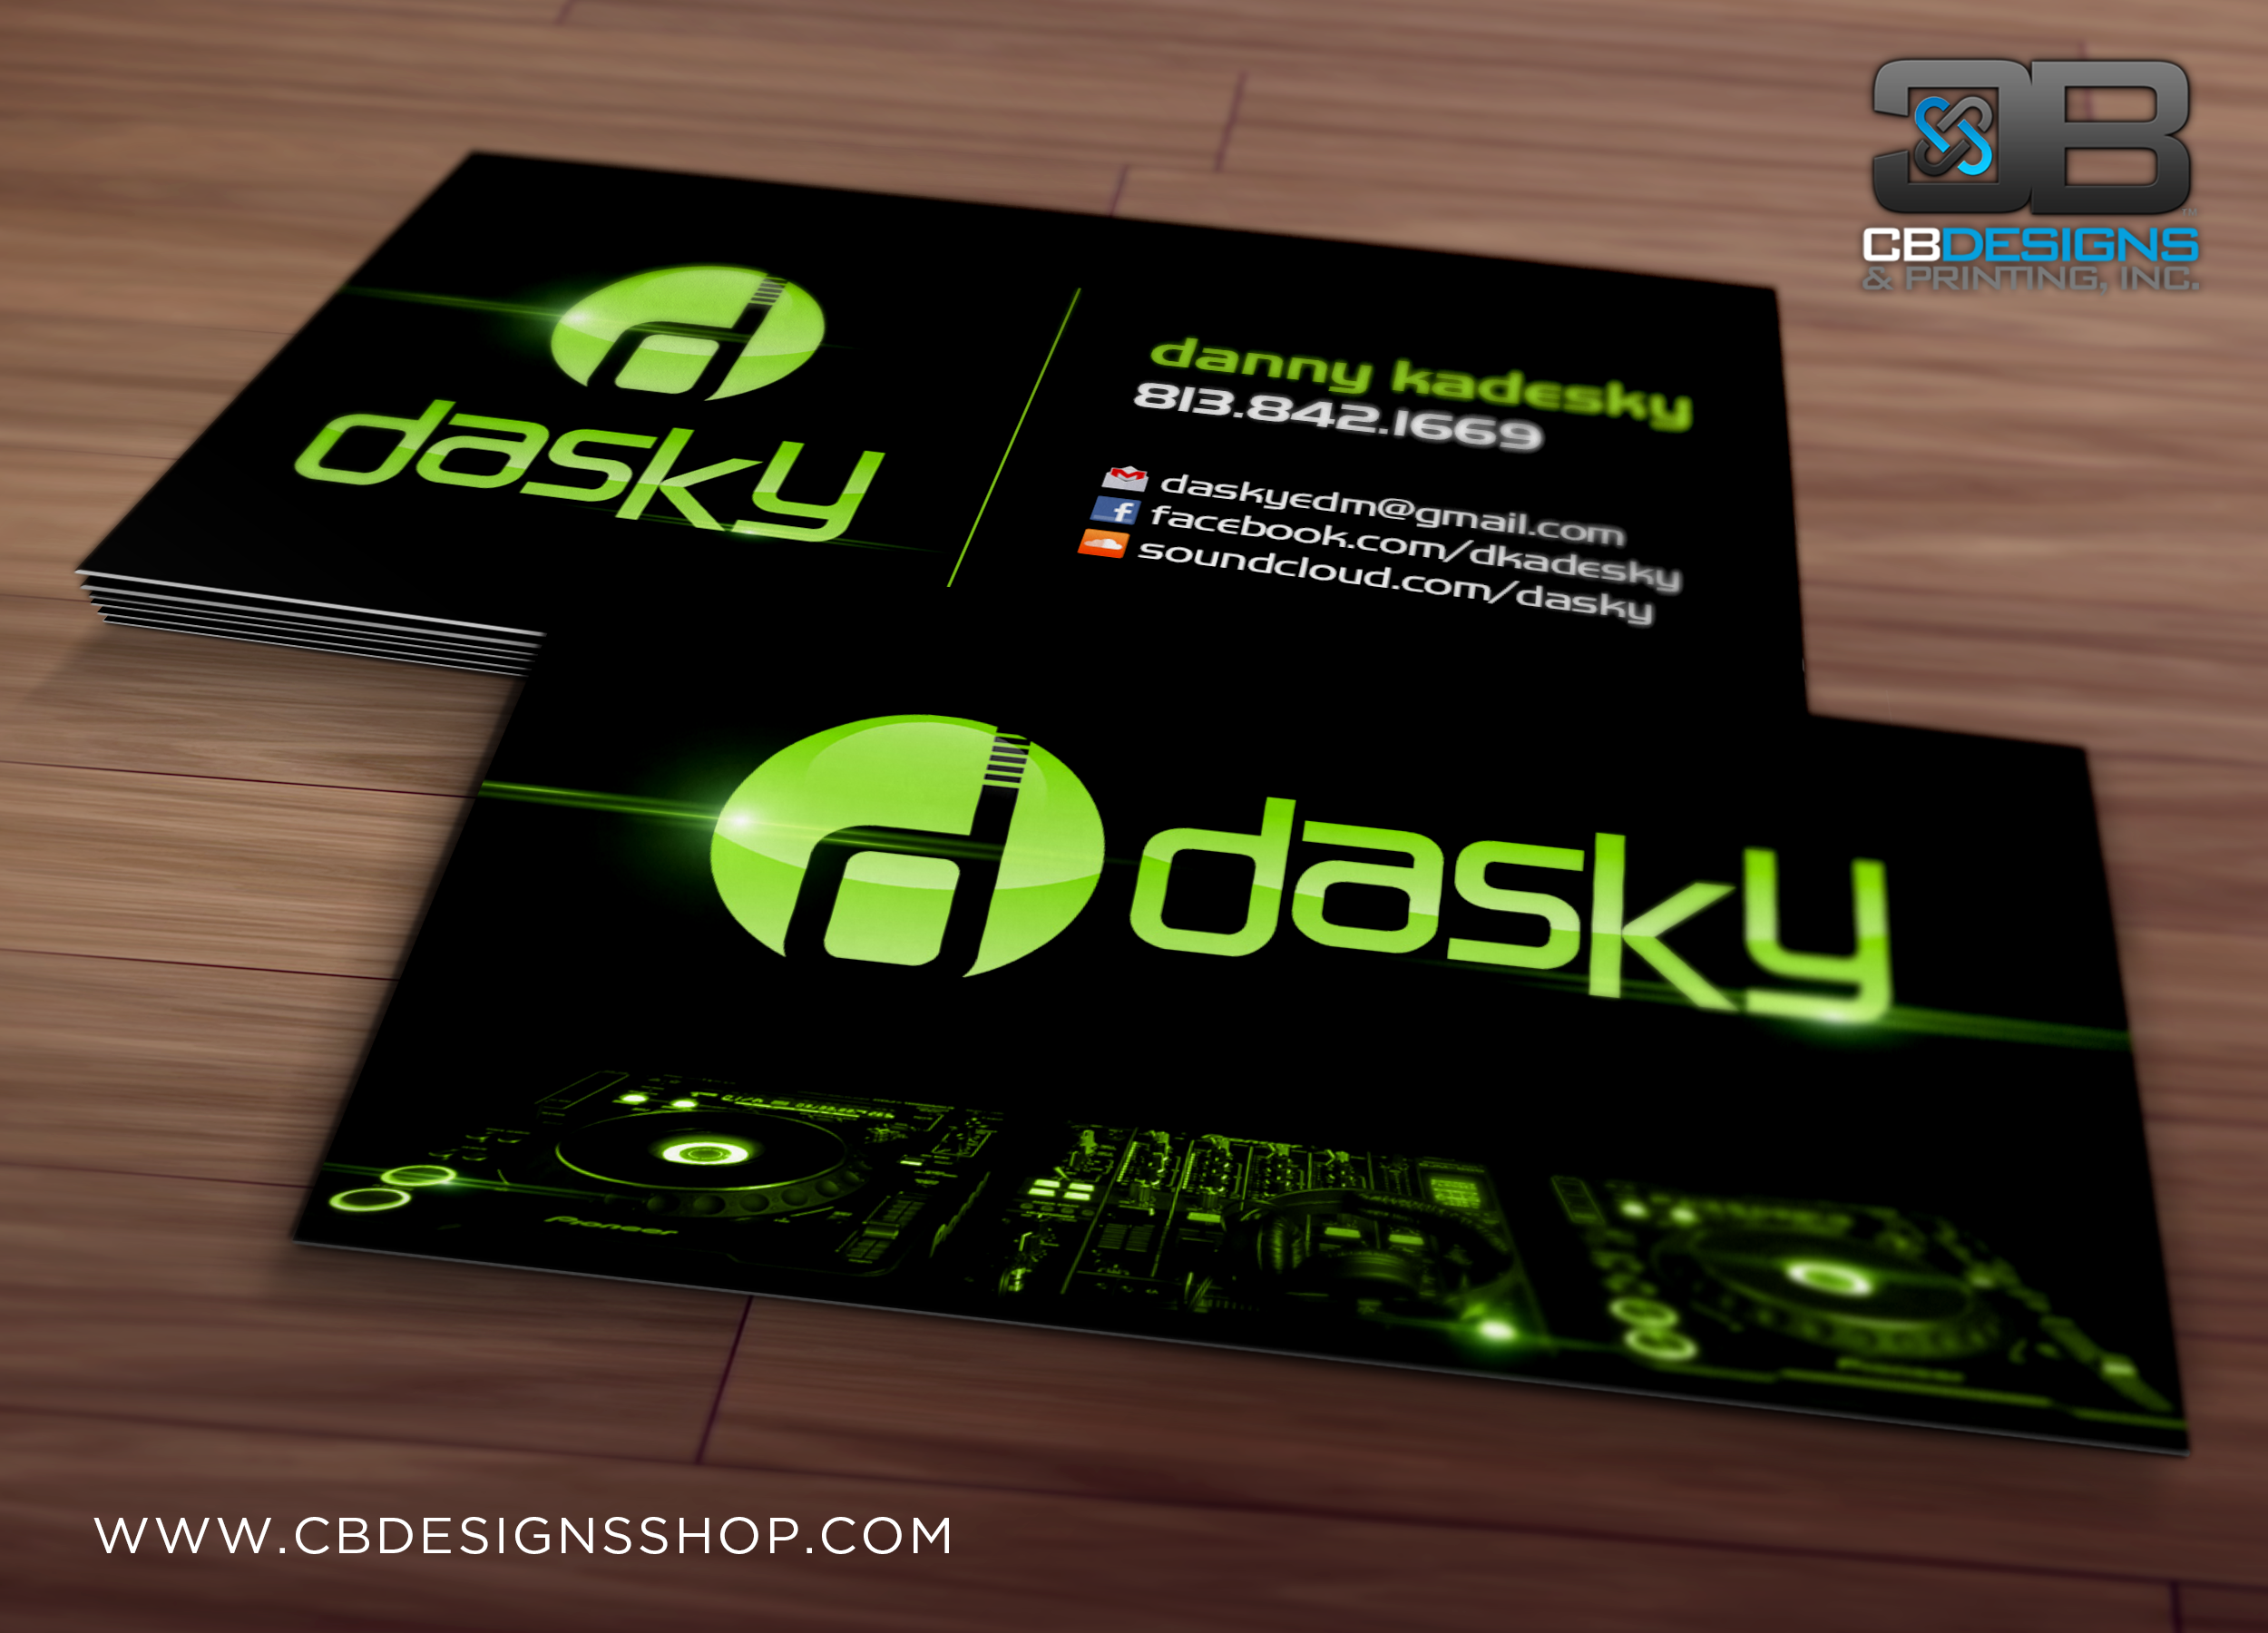 dj deejay music coordinator business cards